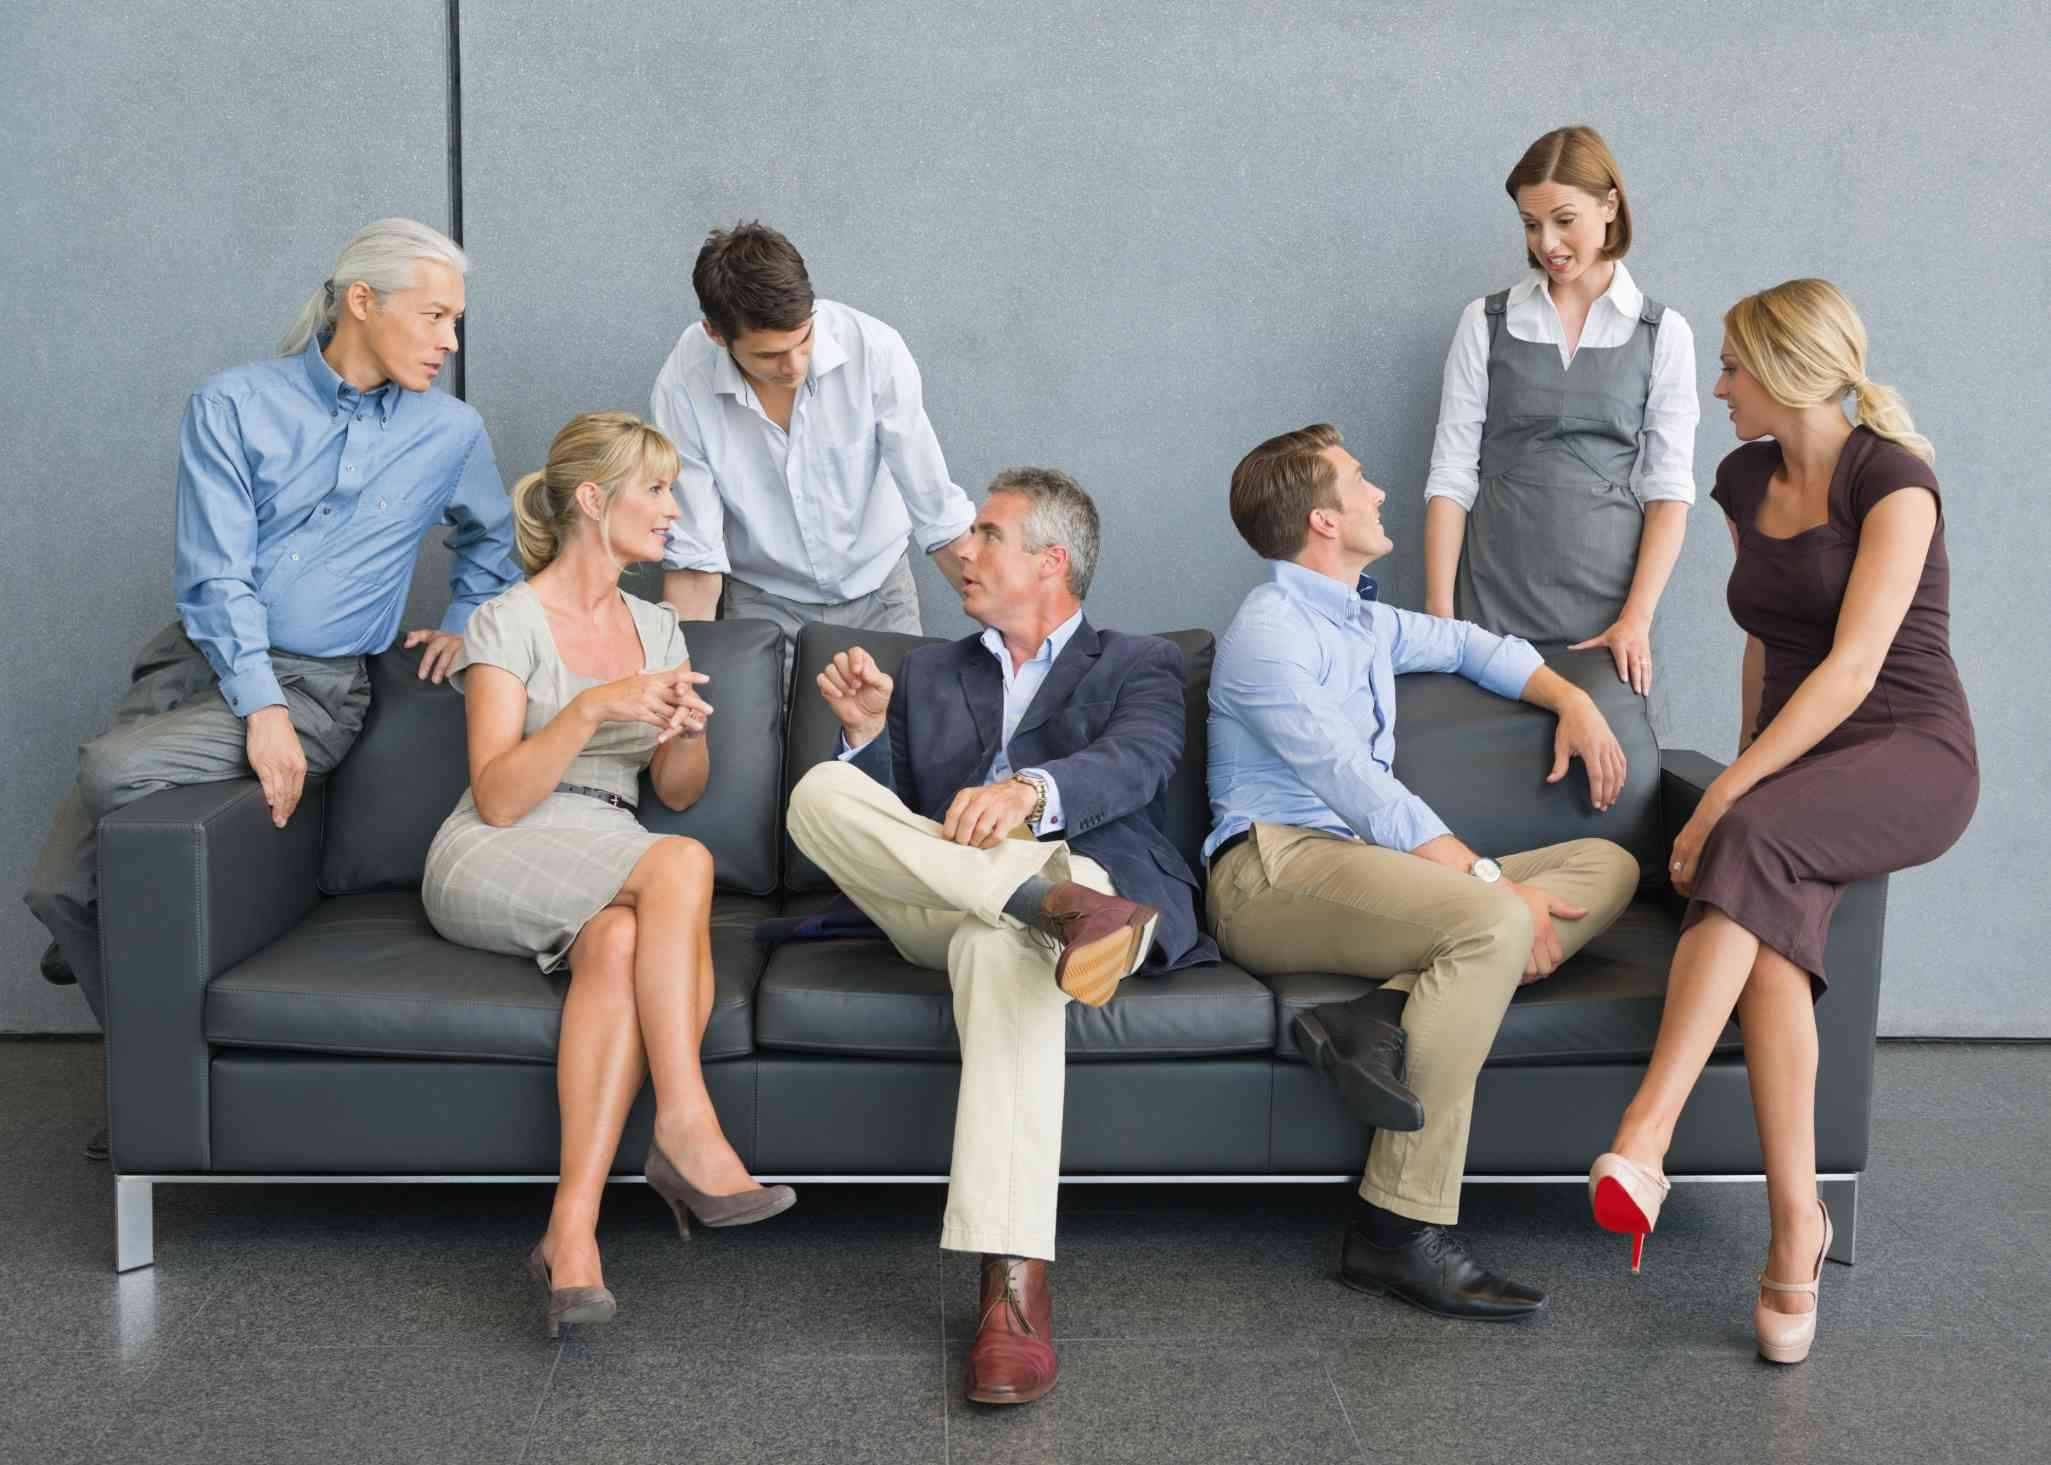 A group of men and women in business casual clothes